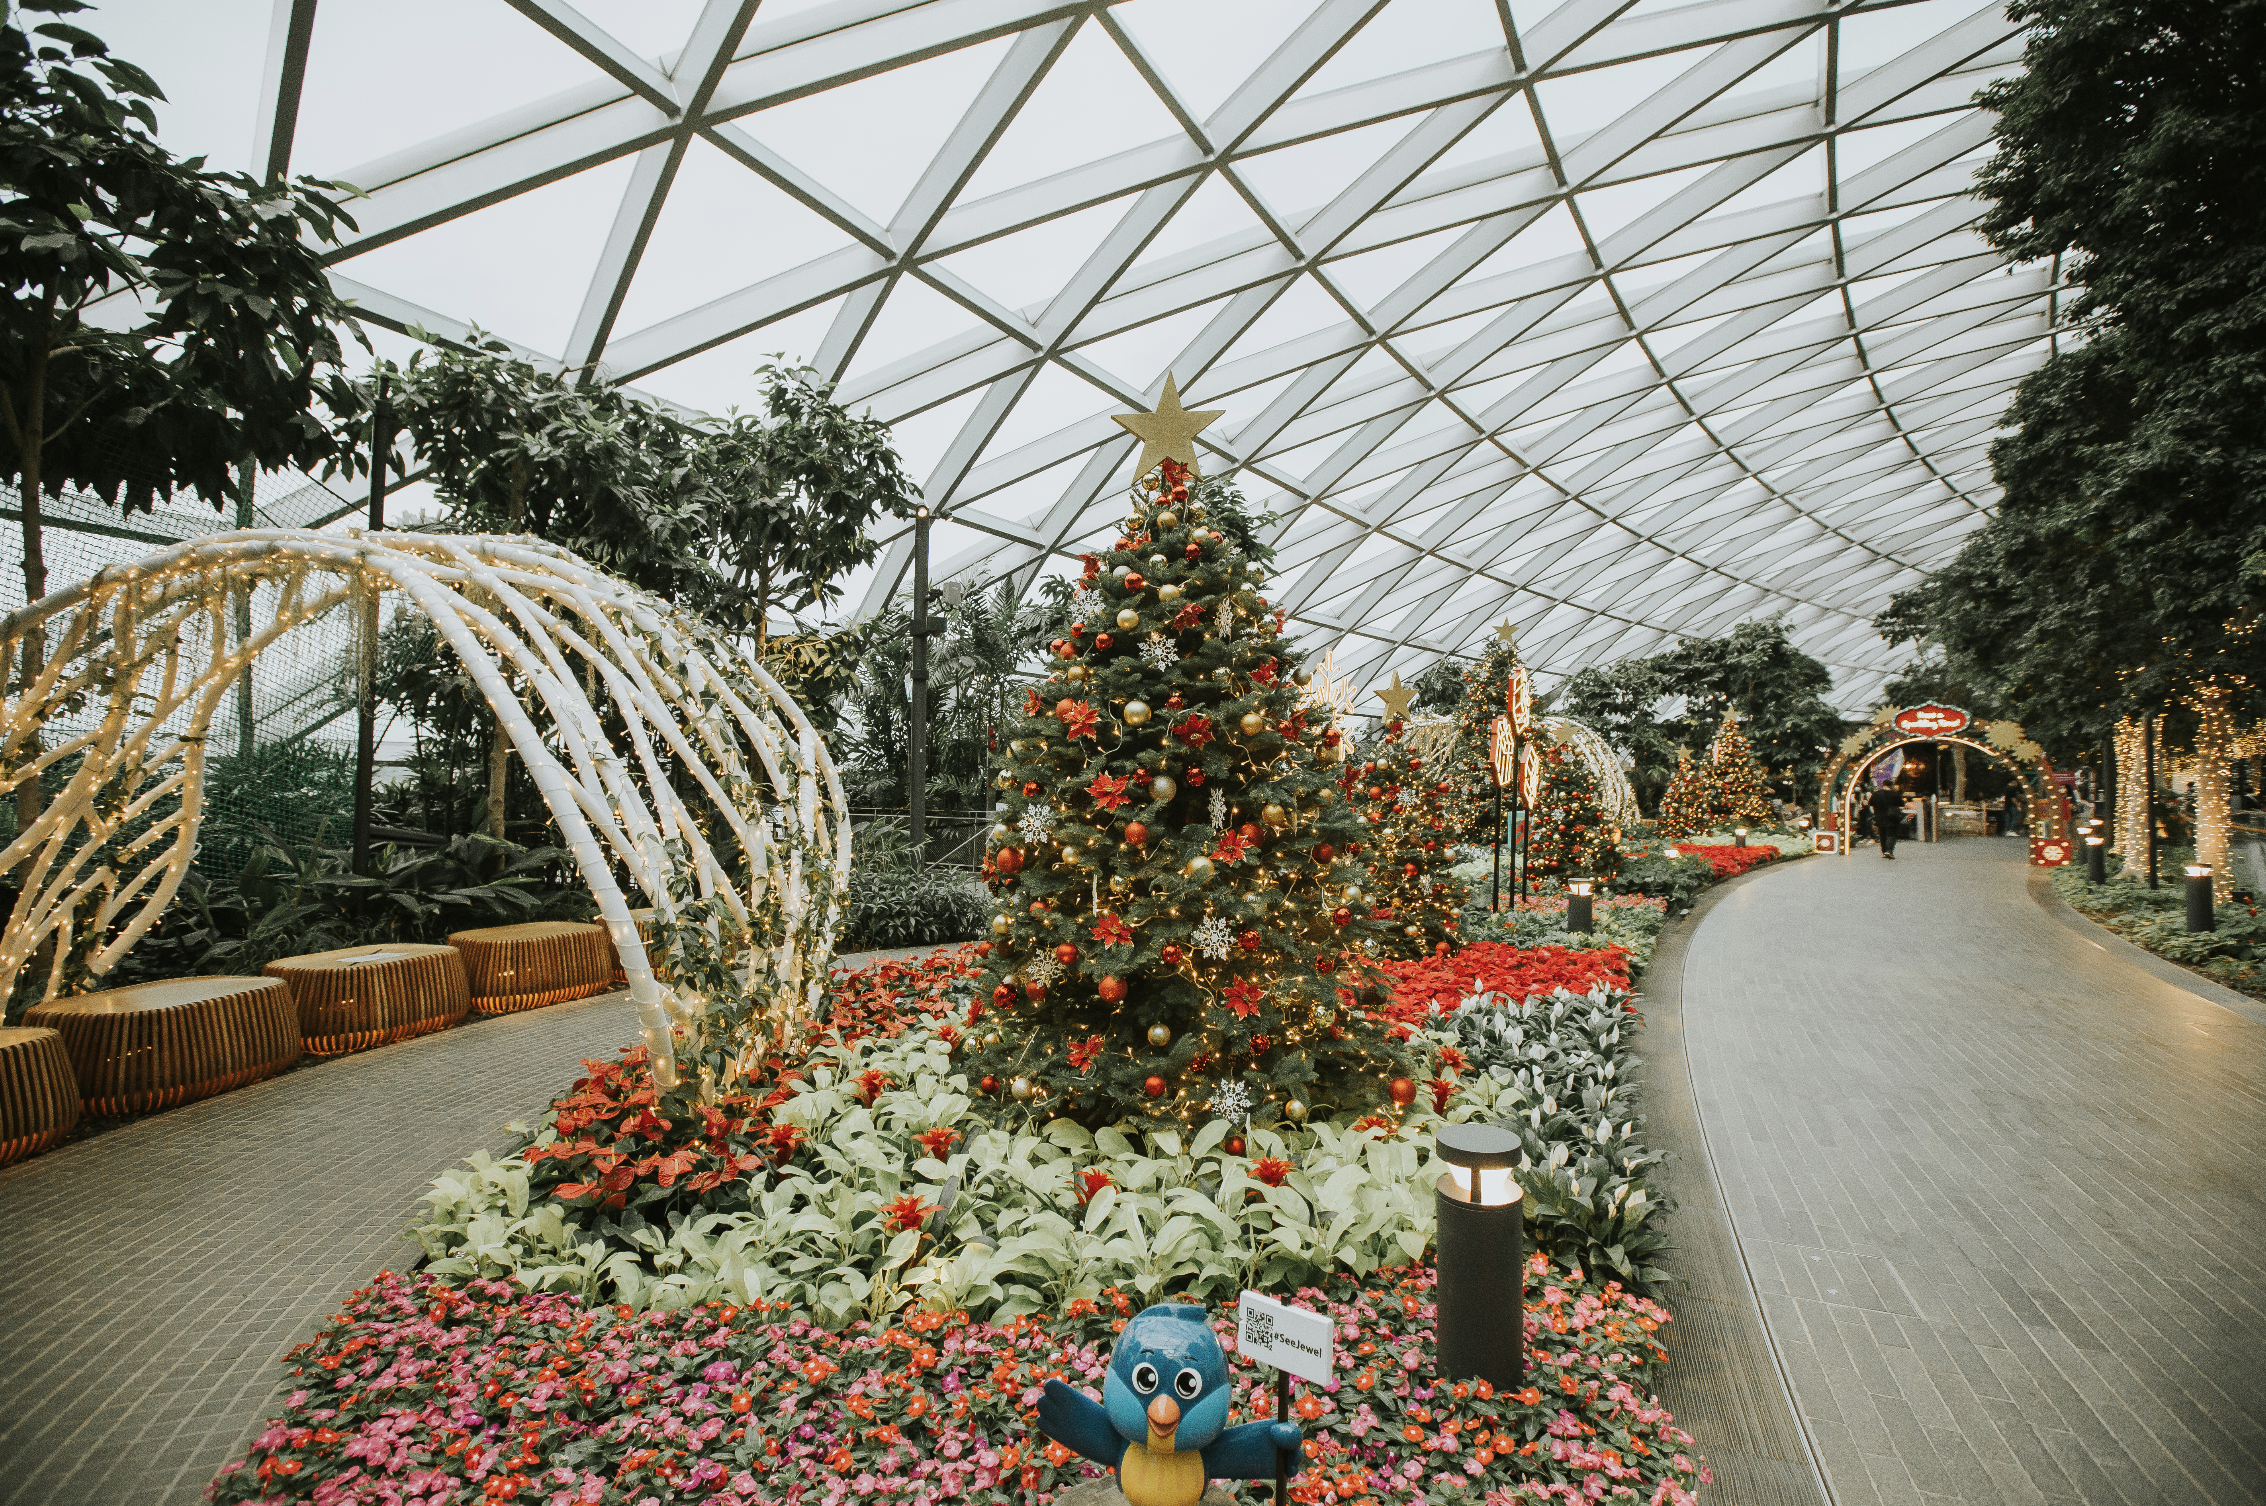 Jewel's Canopy Park decked out in festive decorations to bring the holiday spirit to visitors. Photo courtesy: Changi Airport